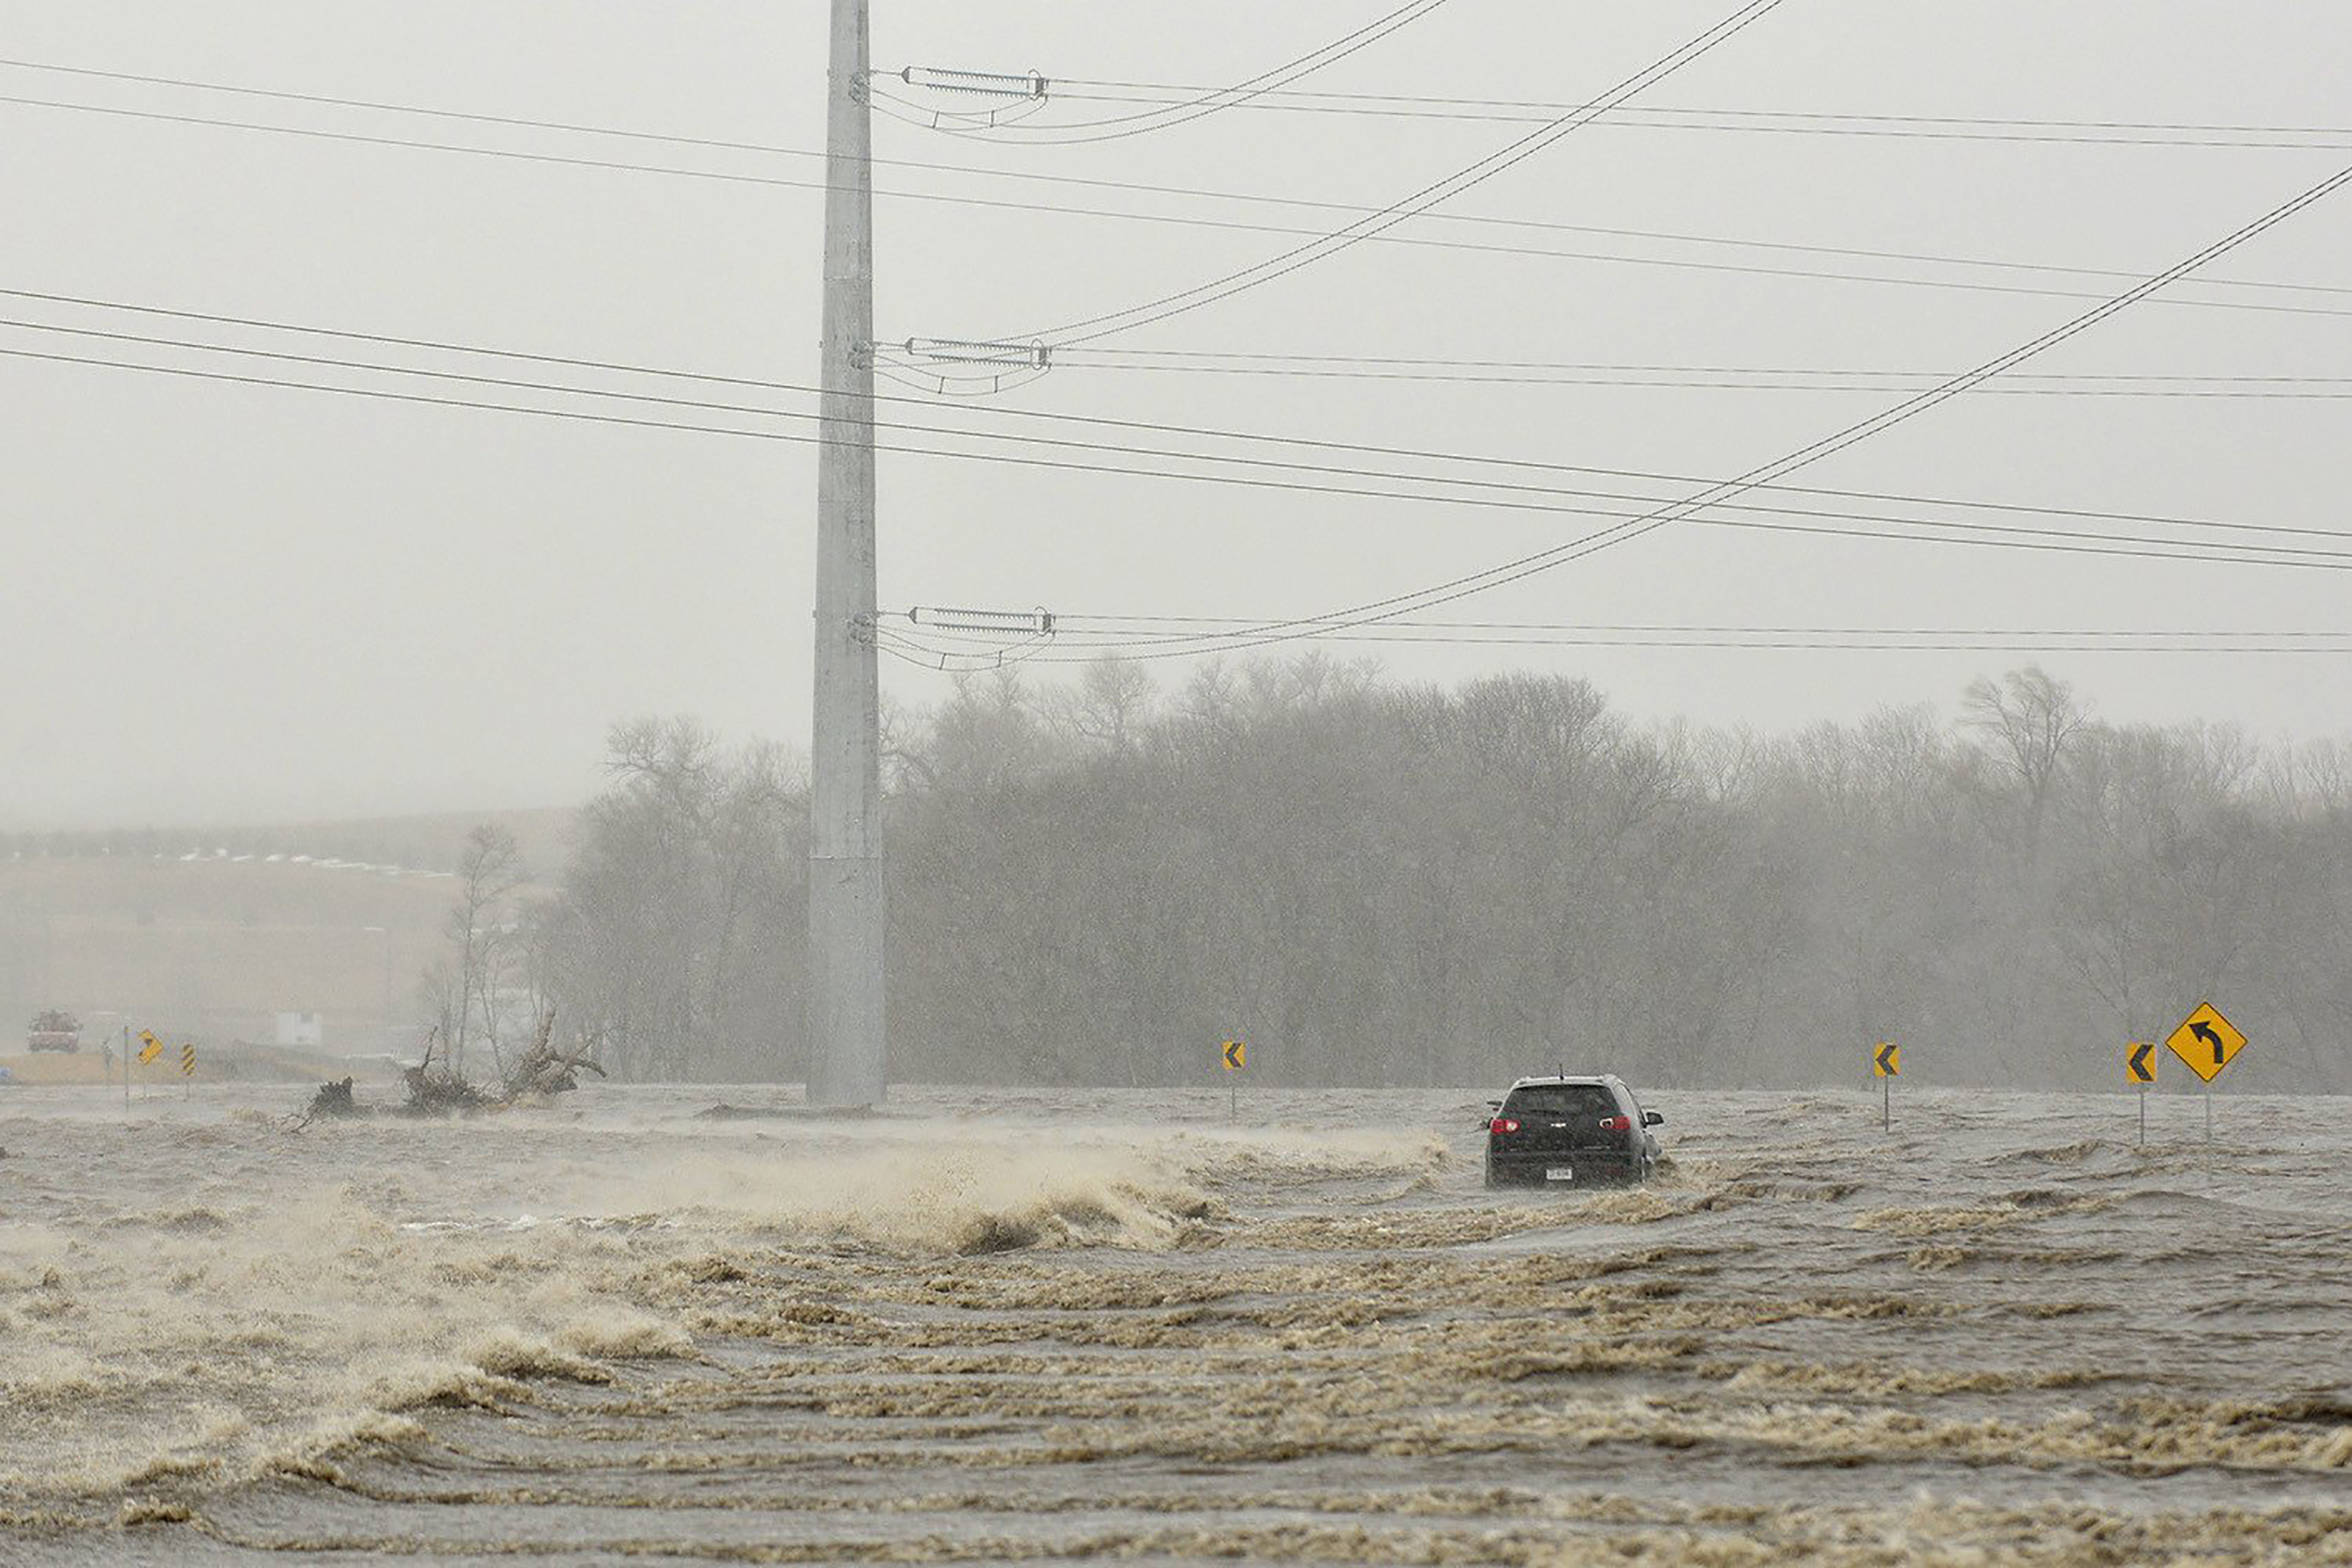 An abandoned car sits on Industrial Highway in flood waters north of Norfolk, Nebraska on March 14, 2019. According to a trooper on scene, the occupant had to be rescued.